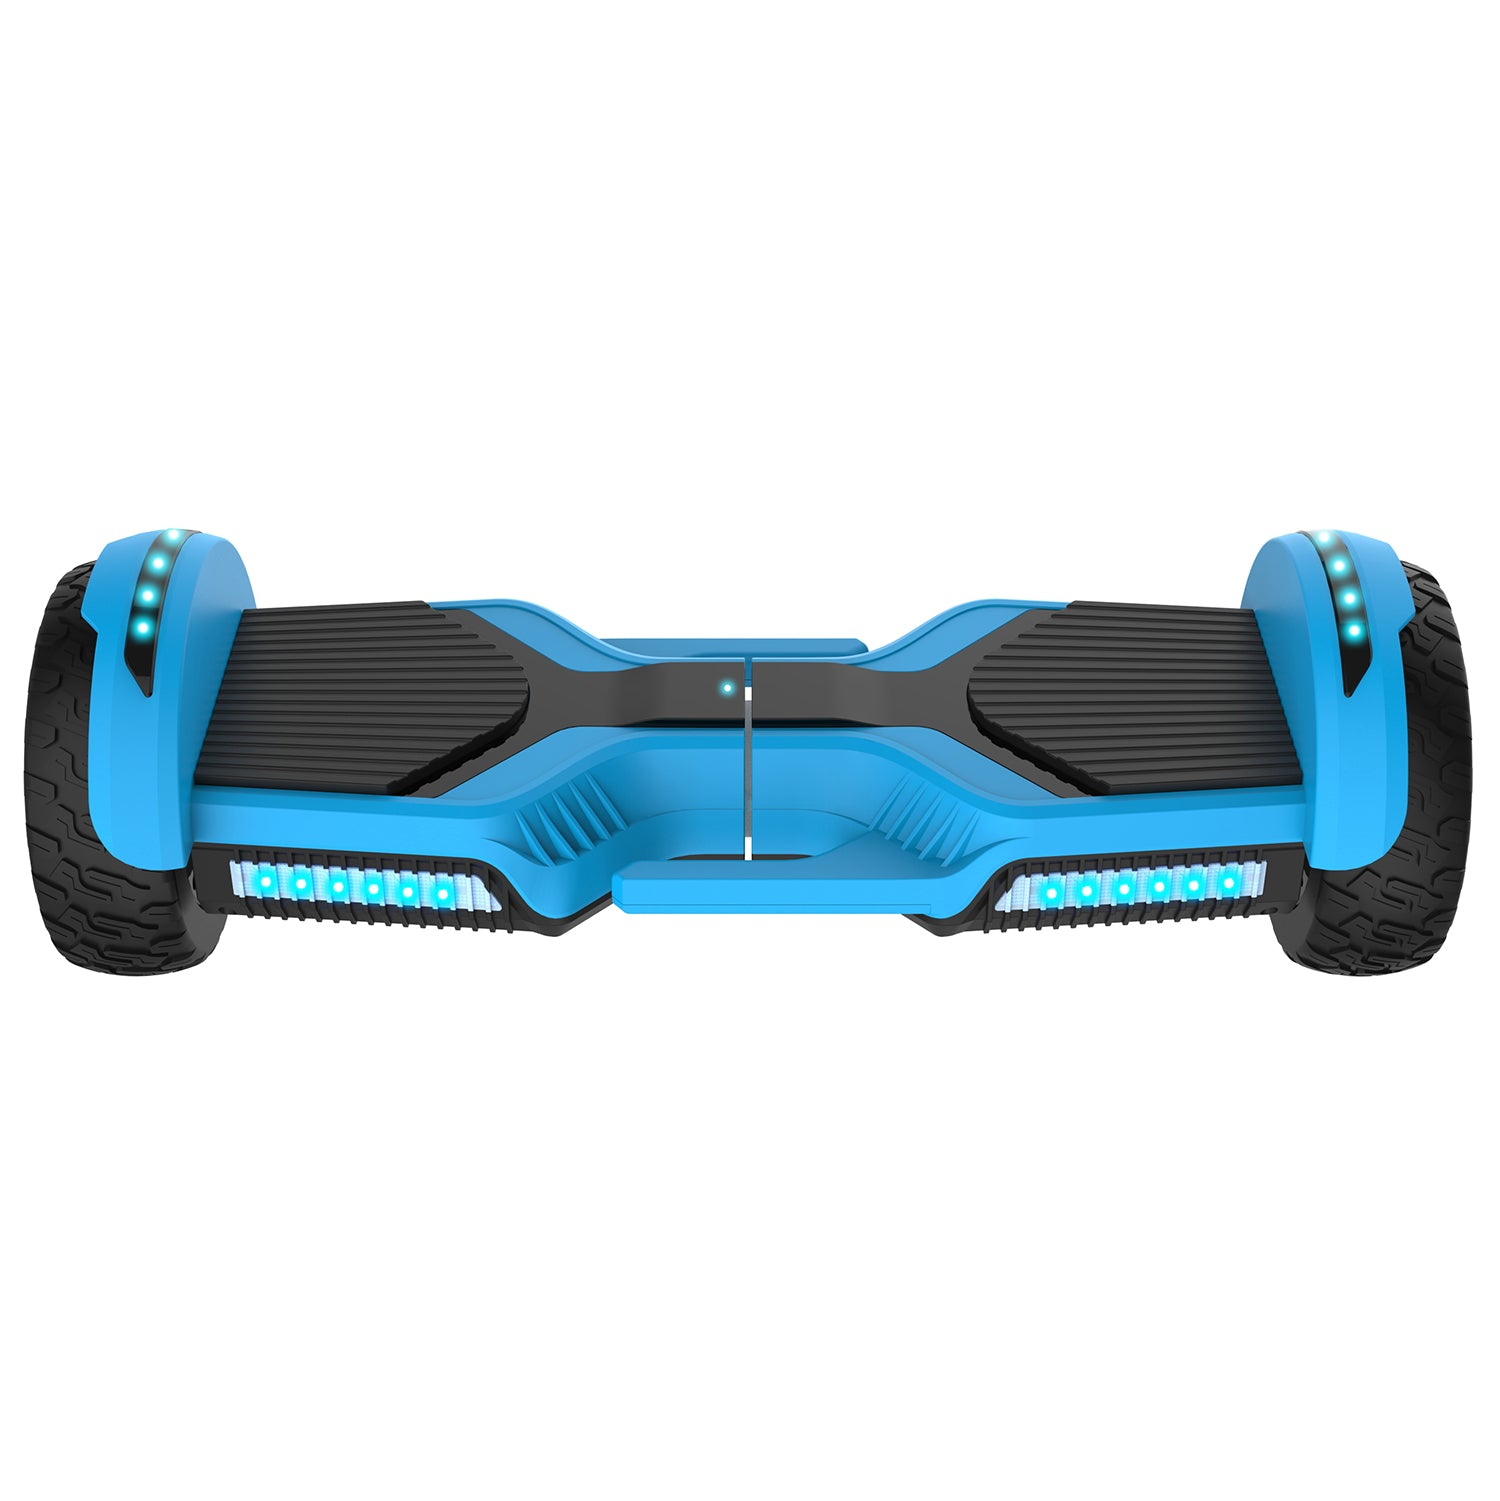 Blue E3 hoverboard front image